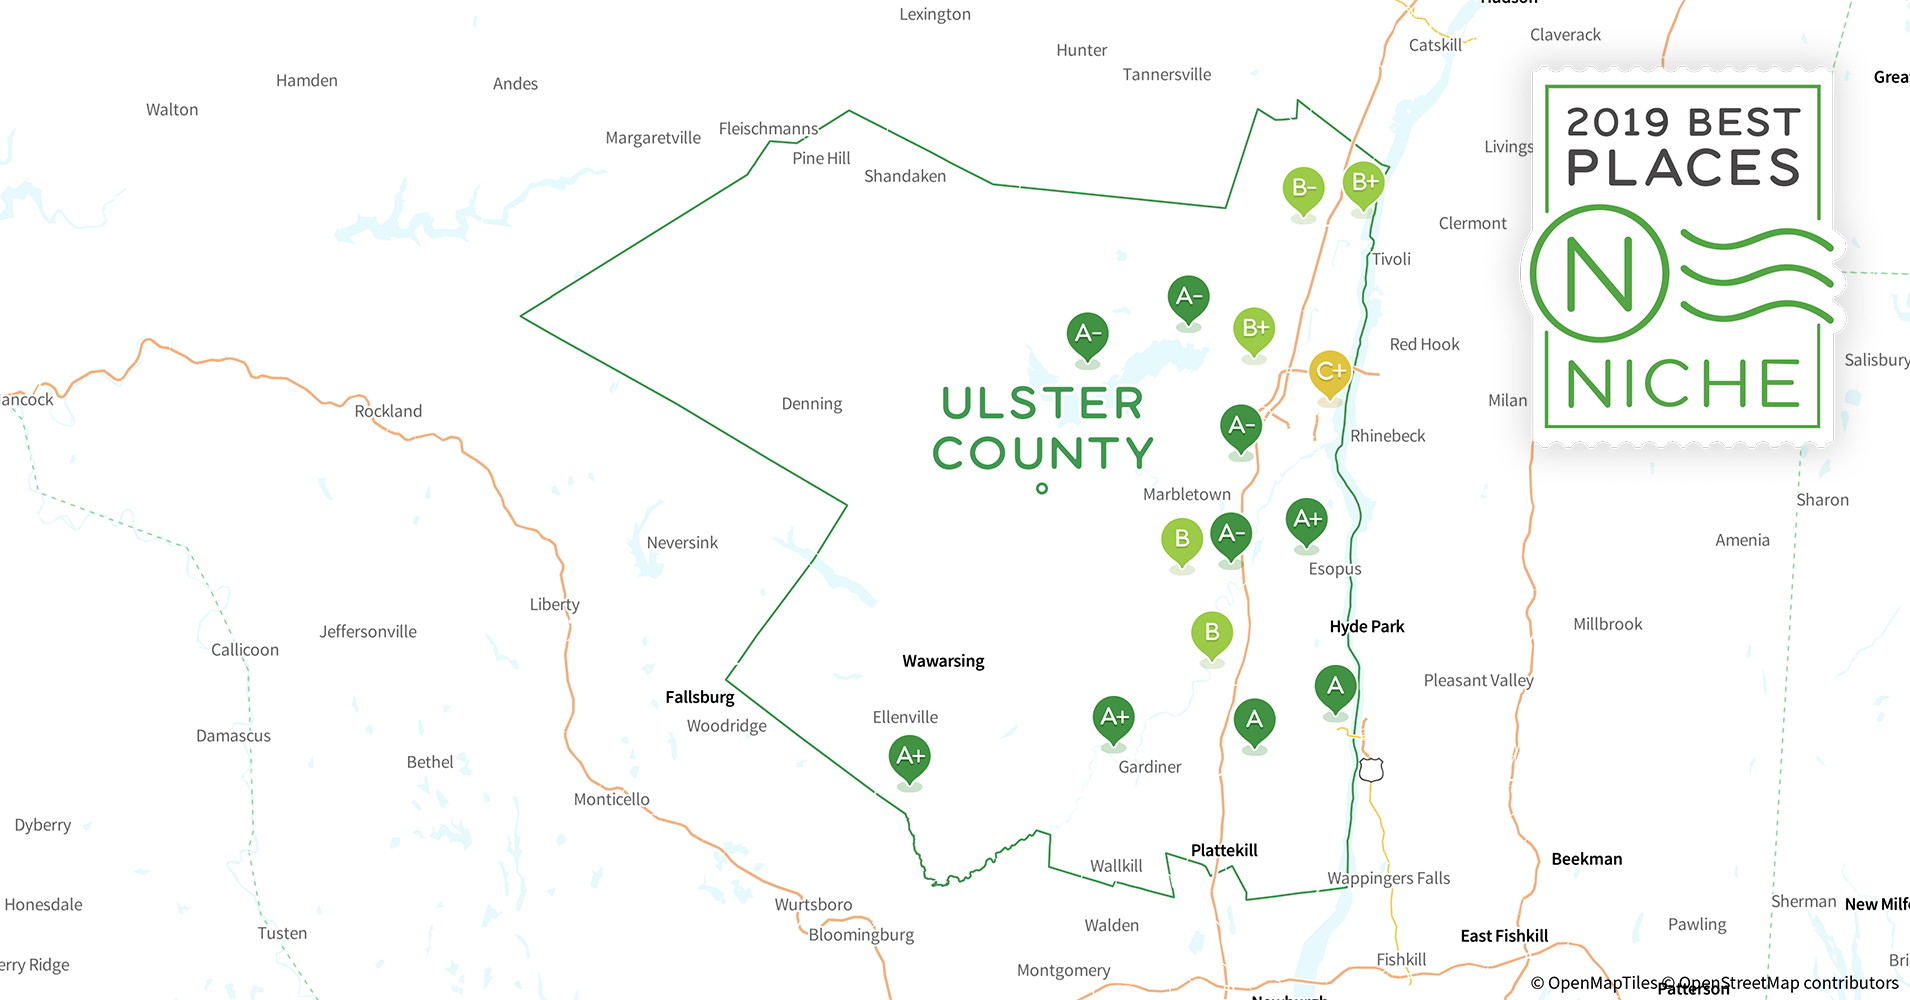 Ulster County New York Map.2019 Best Places To Live In Ulster County Ny Niche